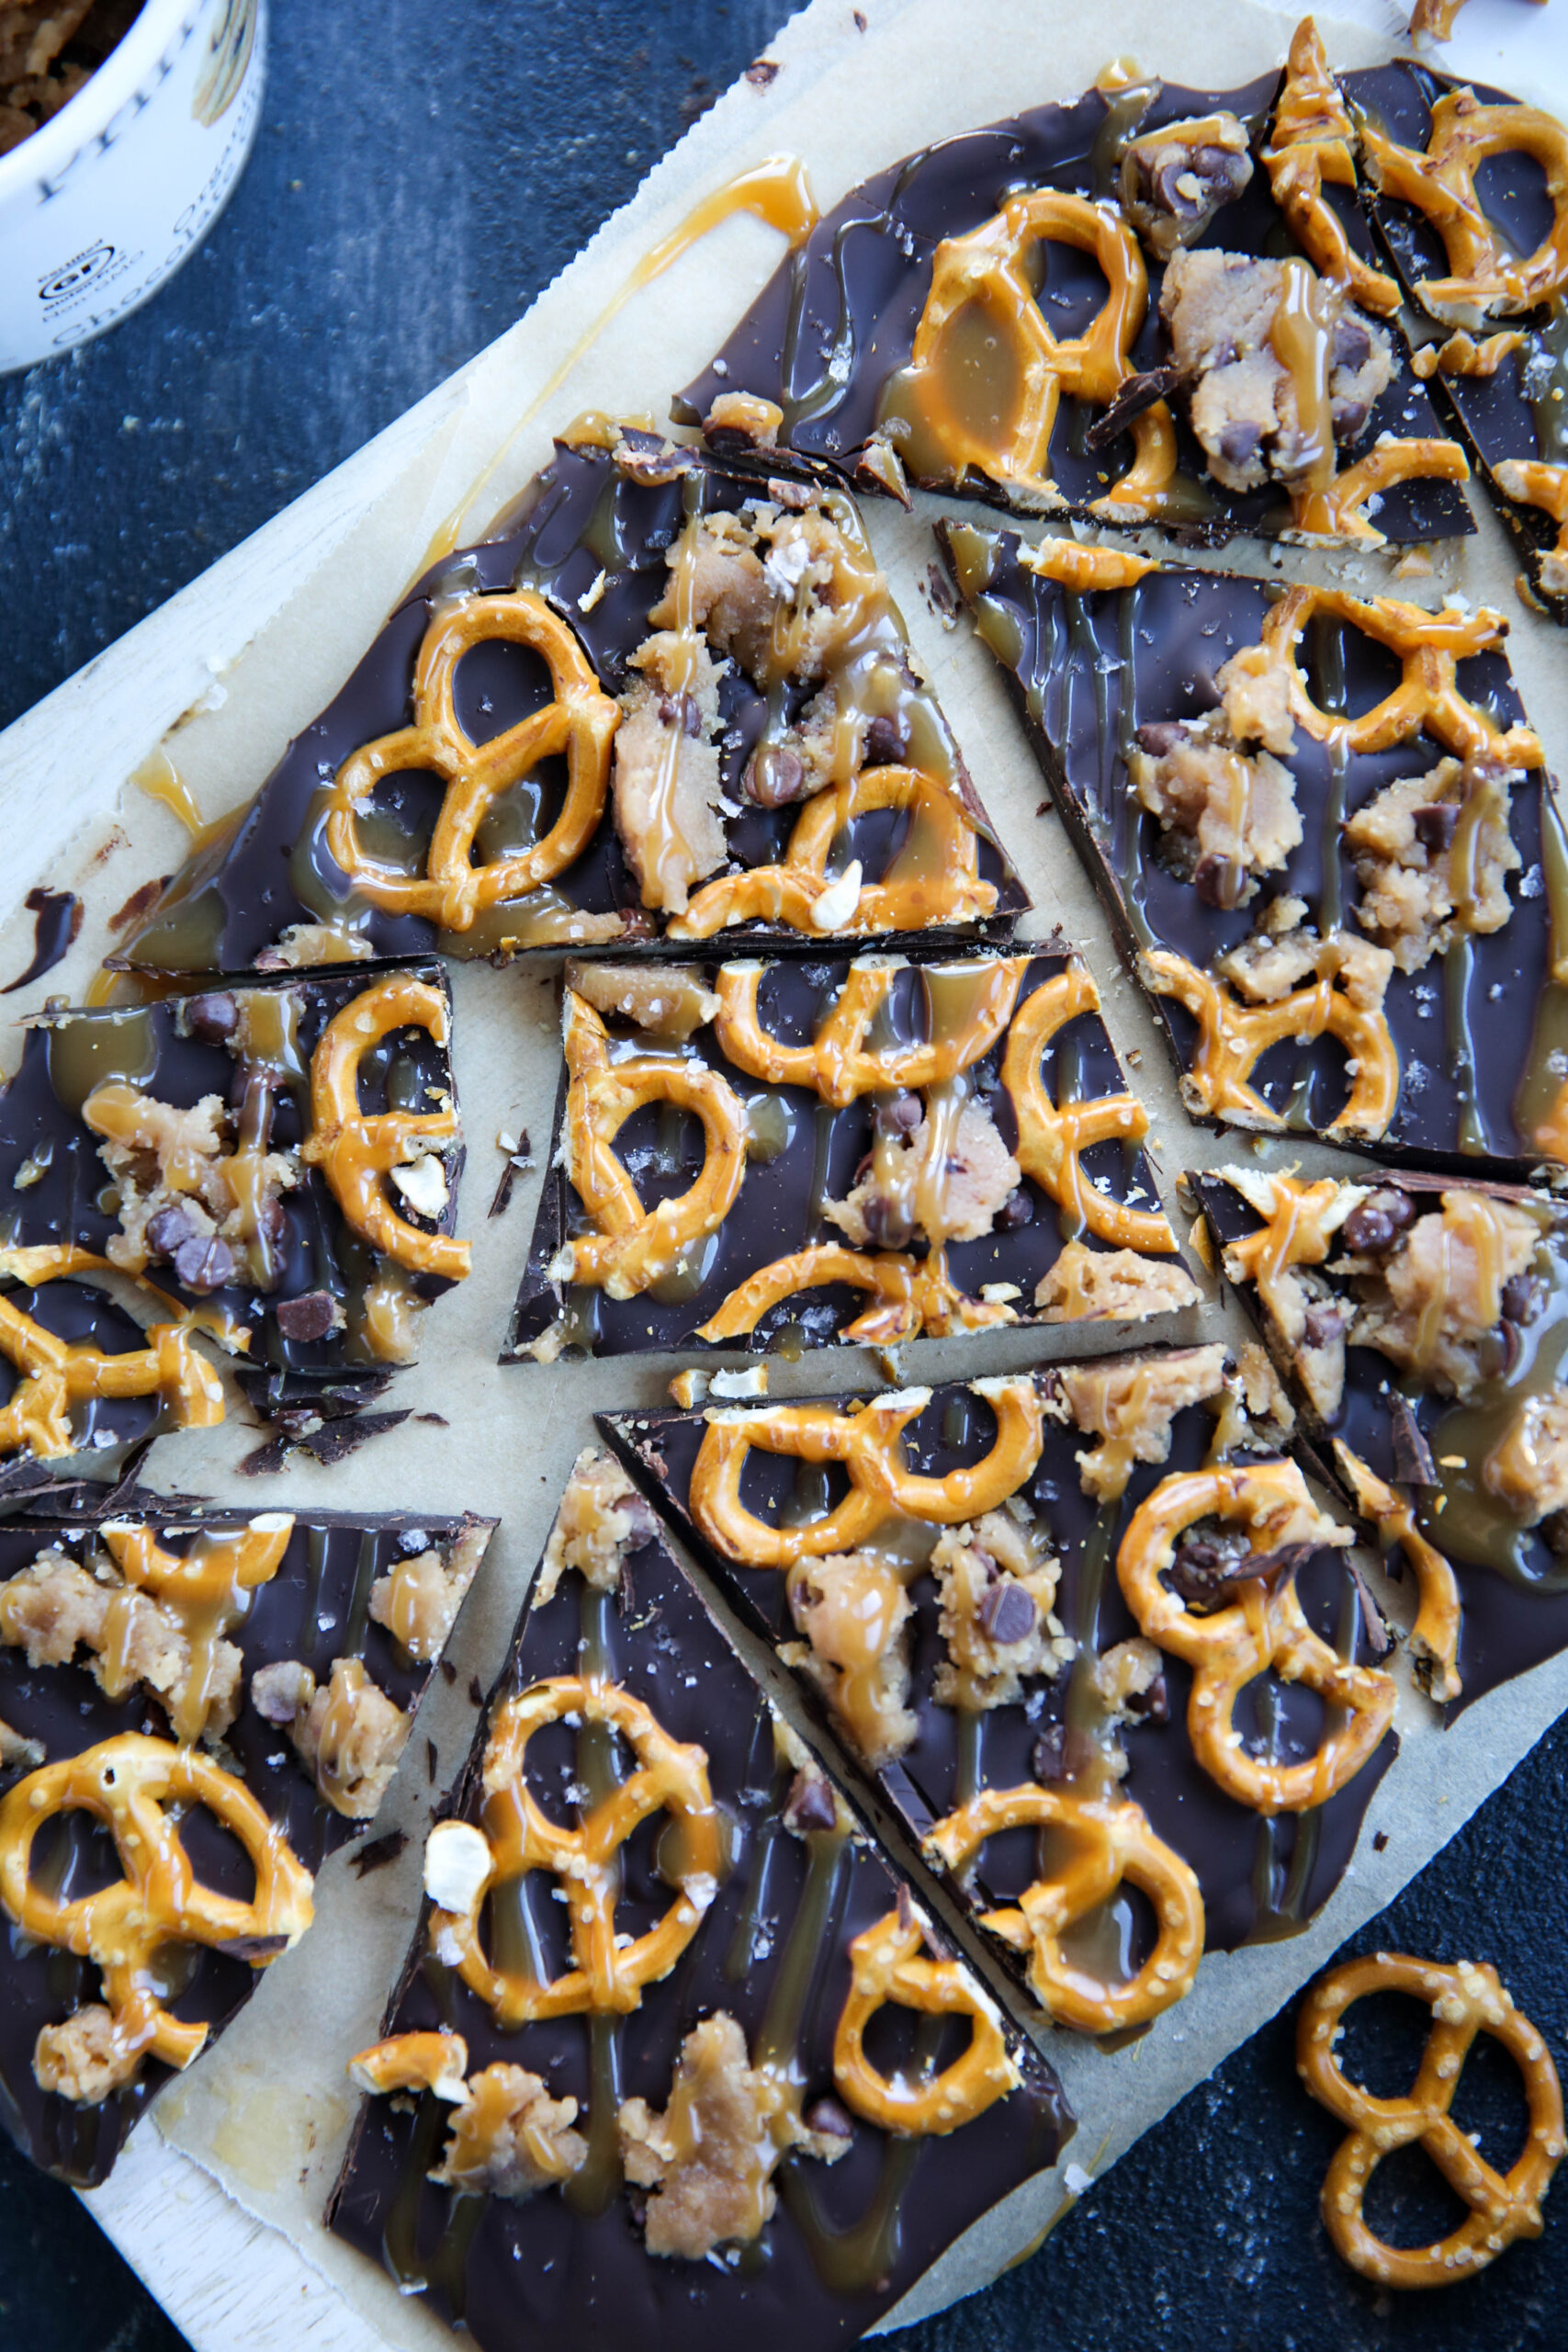 PaleOMG Caramel Pretzel Cookie Dough Bark